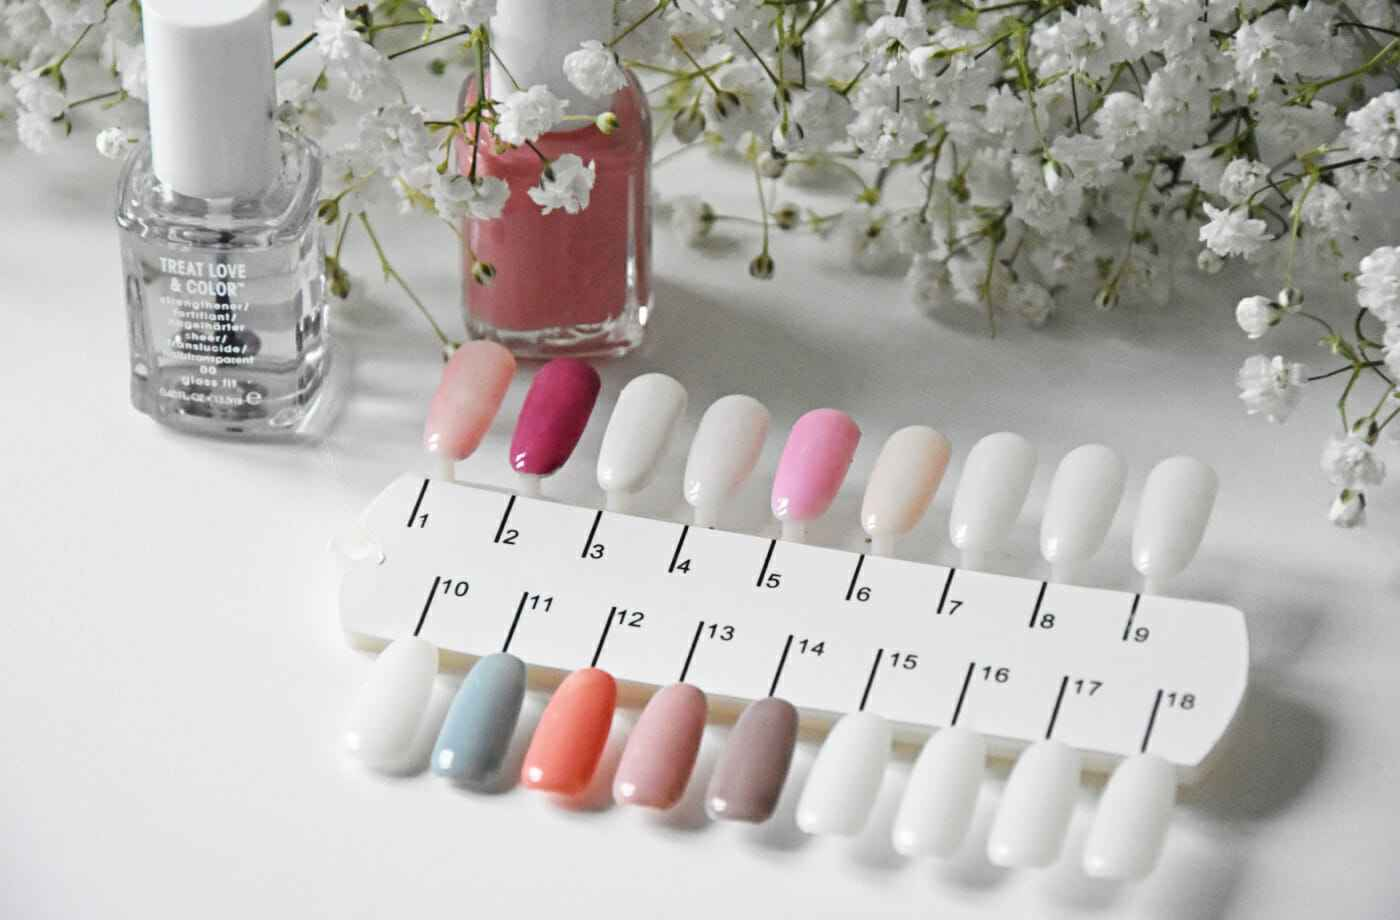 Nail polish news by essie and Alessandro - The Chic Advocate